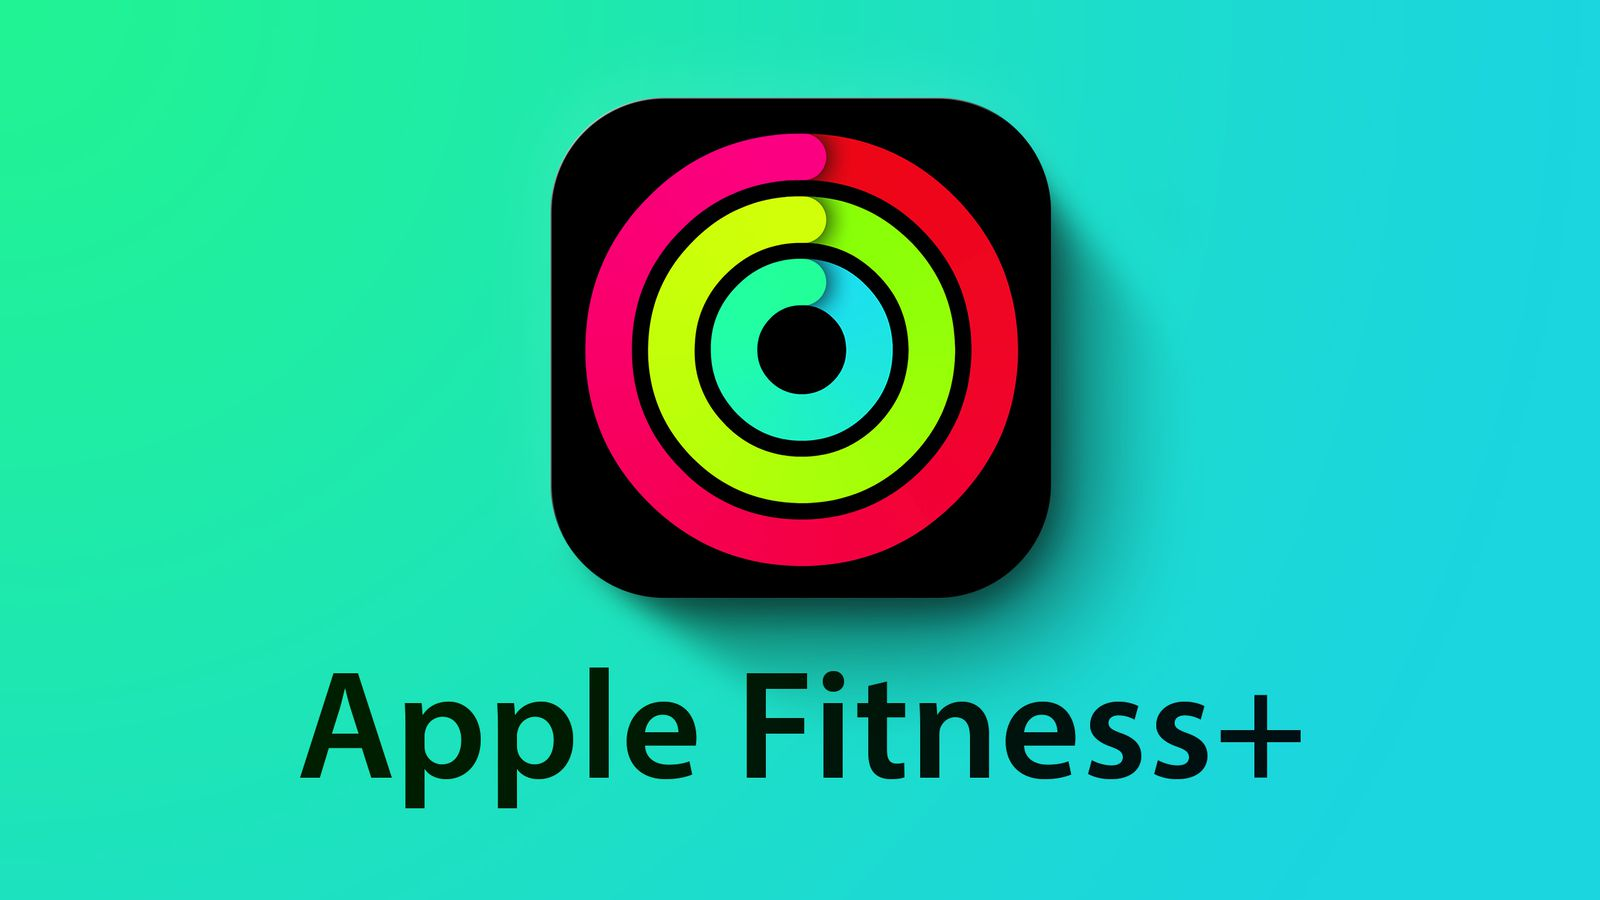 How to Use Apple Fitness+ on Apple Watch